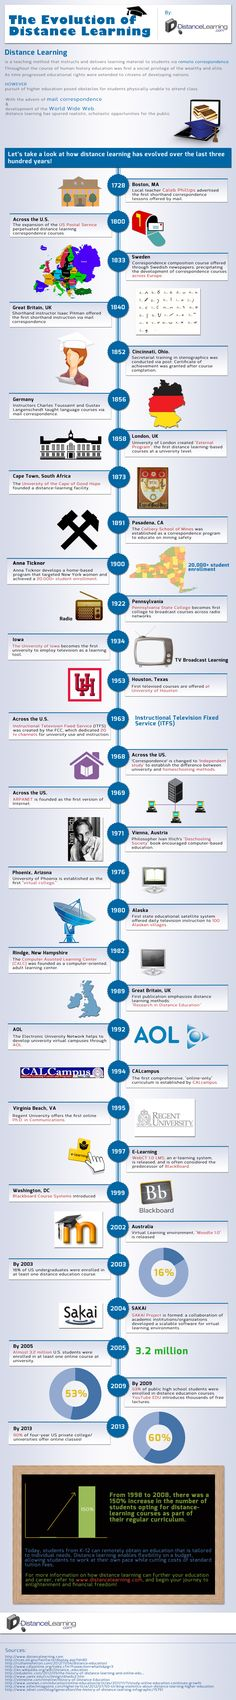 The Evolution of Distance Learning